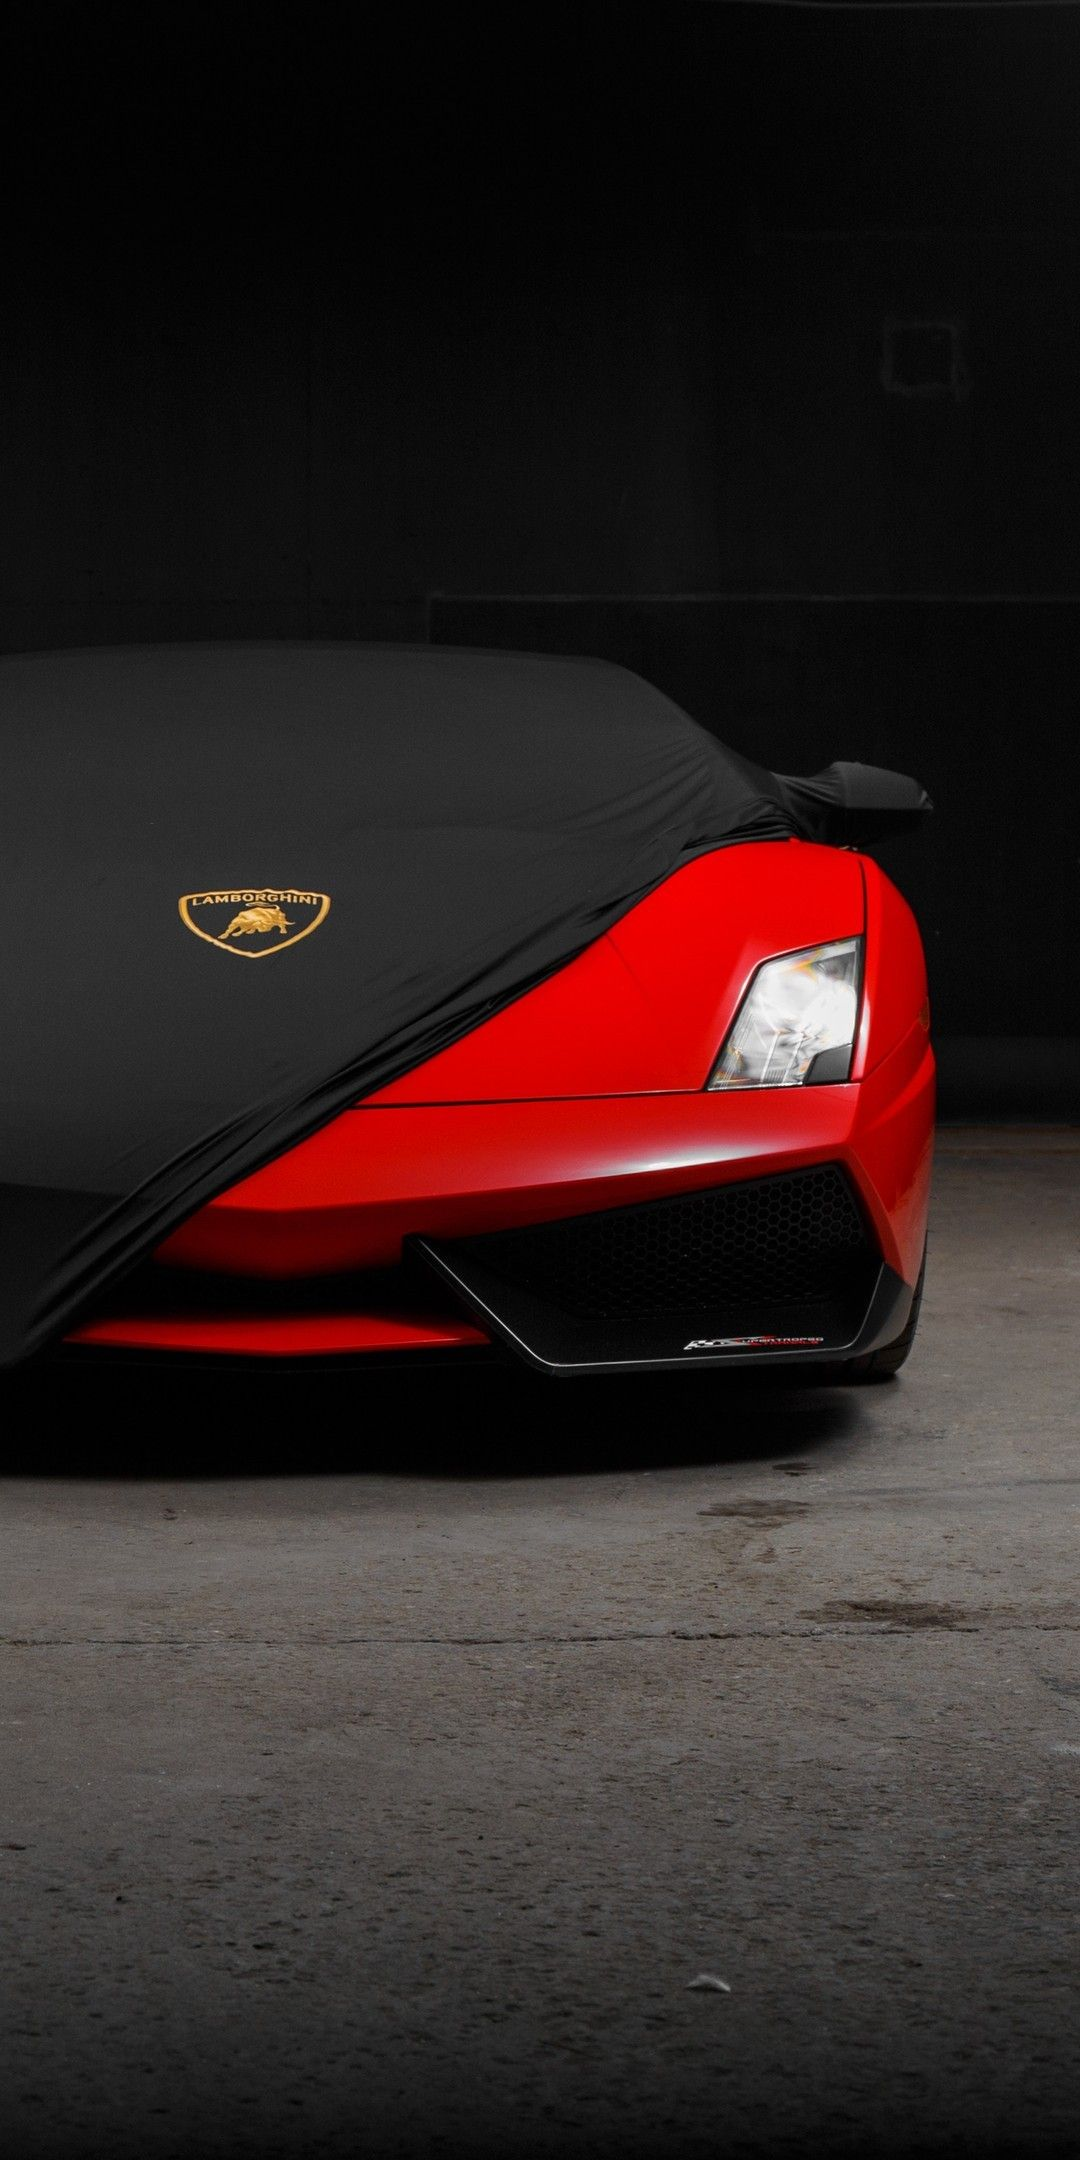 Pin By Stephanie Anguiano On Wants Pinterest Cars Lamborghini